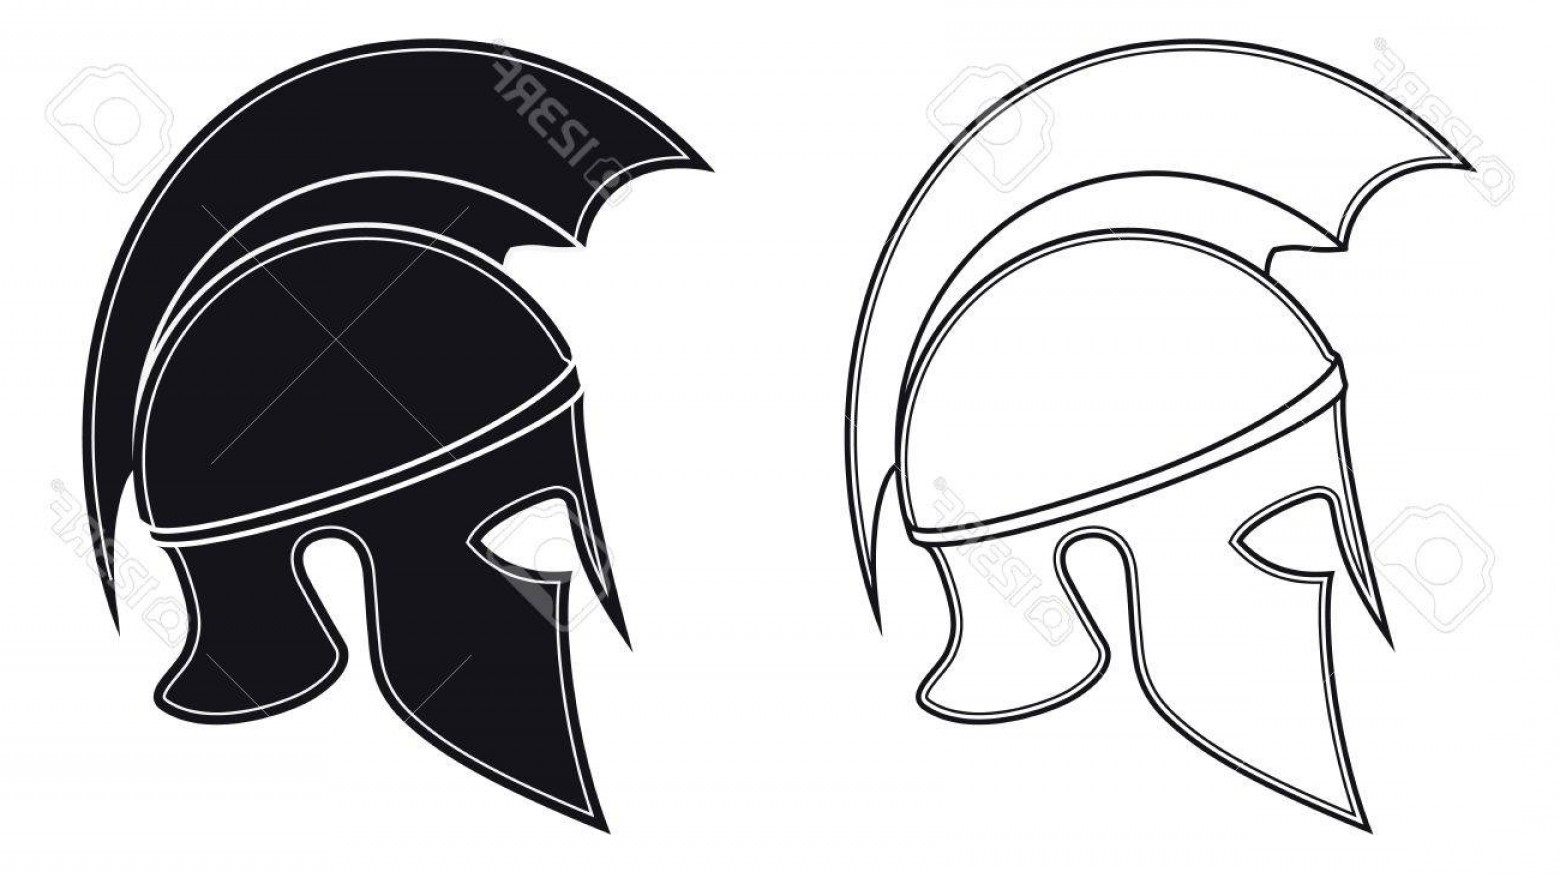 Boba Fett Vector Black And White: Photostock Vector Black And White Vector Illustration Of A Side Silhouette On Ancient Greek Warrior Helmet Spartan Hel